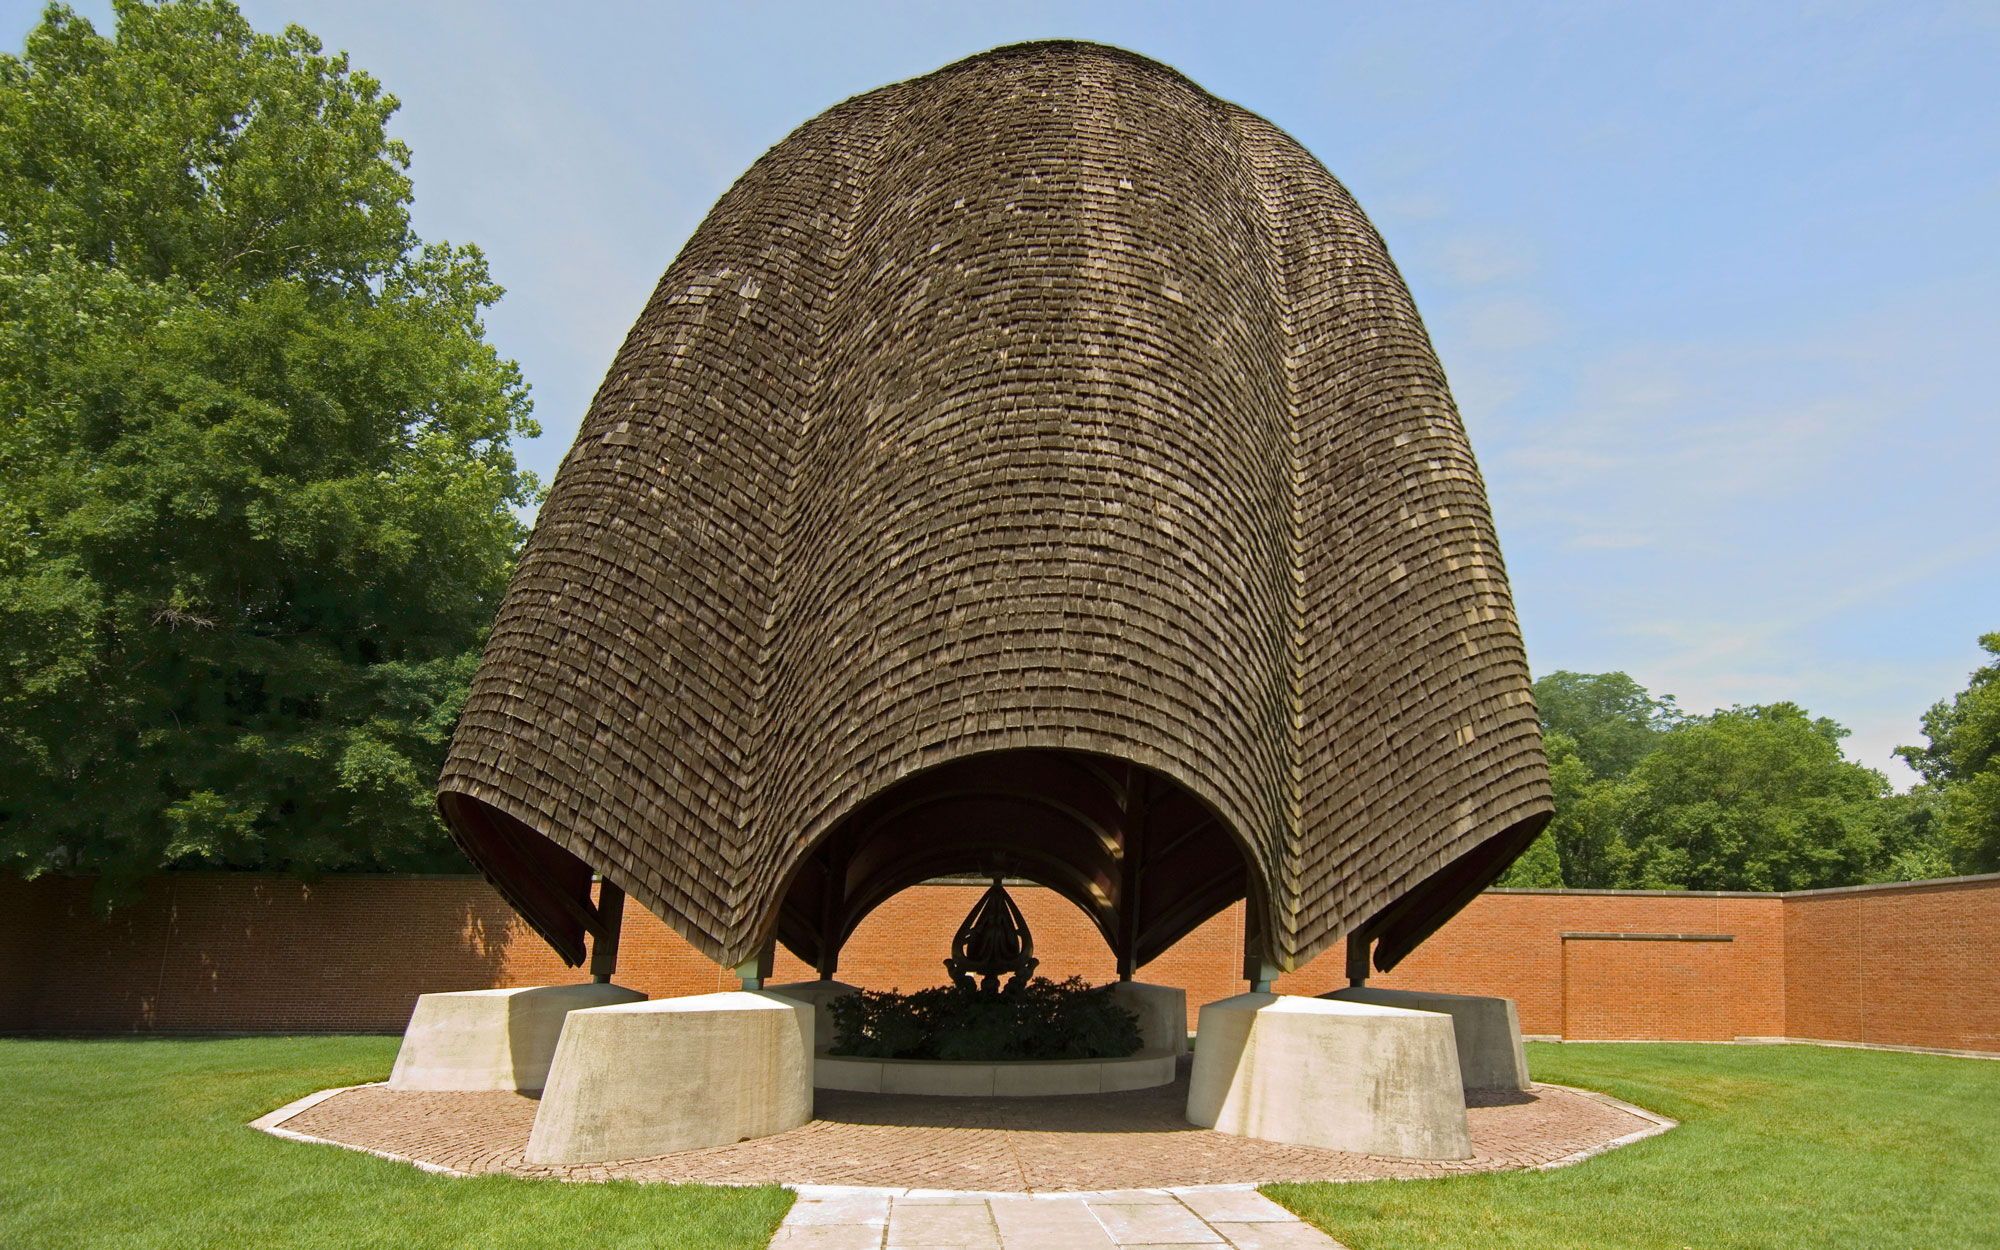 Weirdest Roadside Attractions: Indiana: Roofless Church